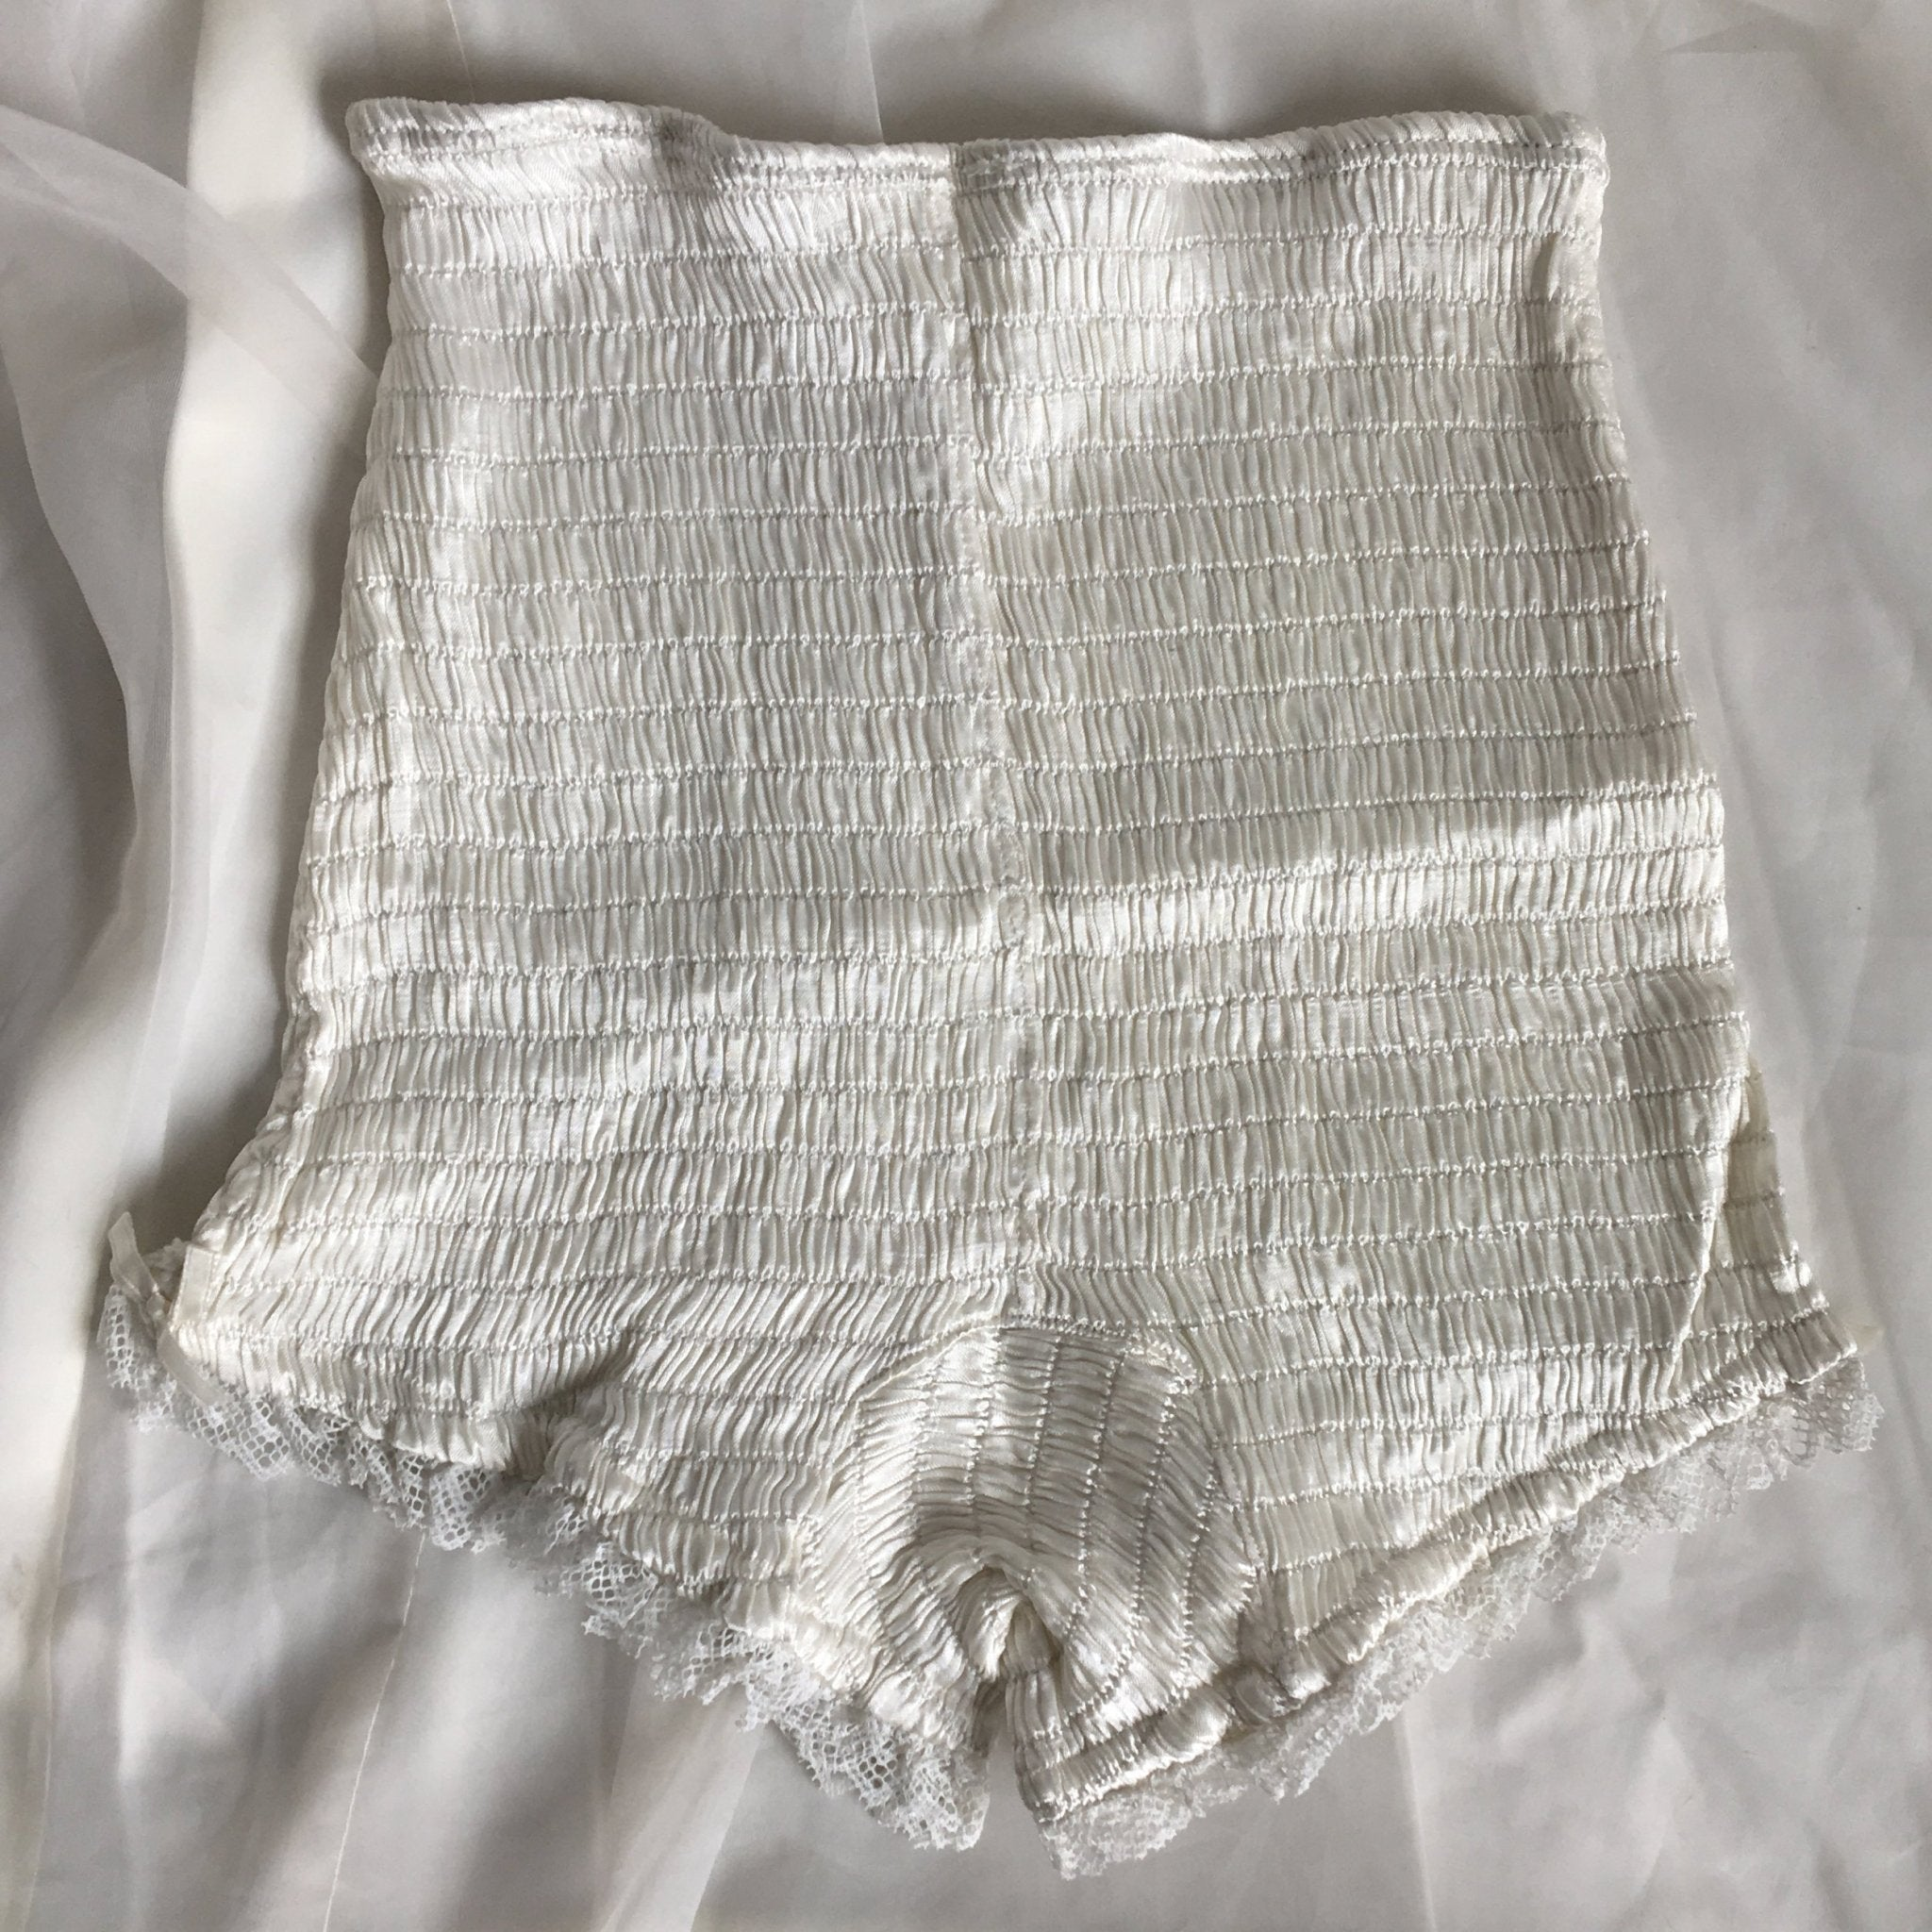 Vintage 1940's Girdle Panties | Ruched White Rayon Satin with Cotton Lace & Bows | Mabs Bitsies | Size XXS, XS - Daggers & Dames